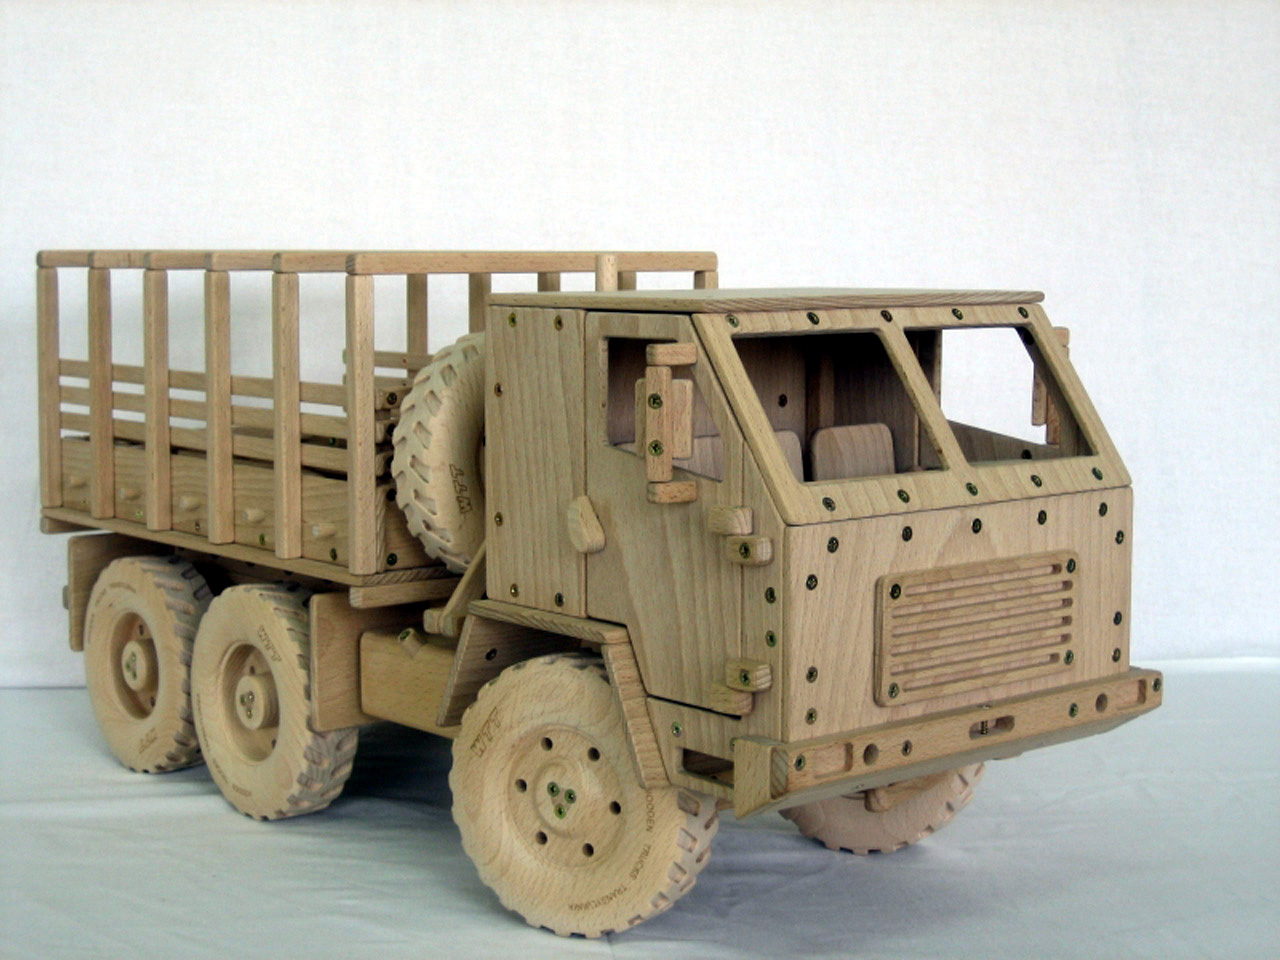 free wooden toy truck plans can help you to easily build your wooden ...